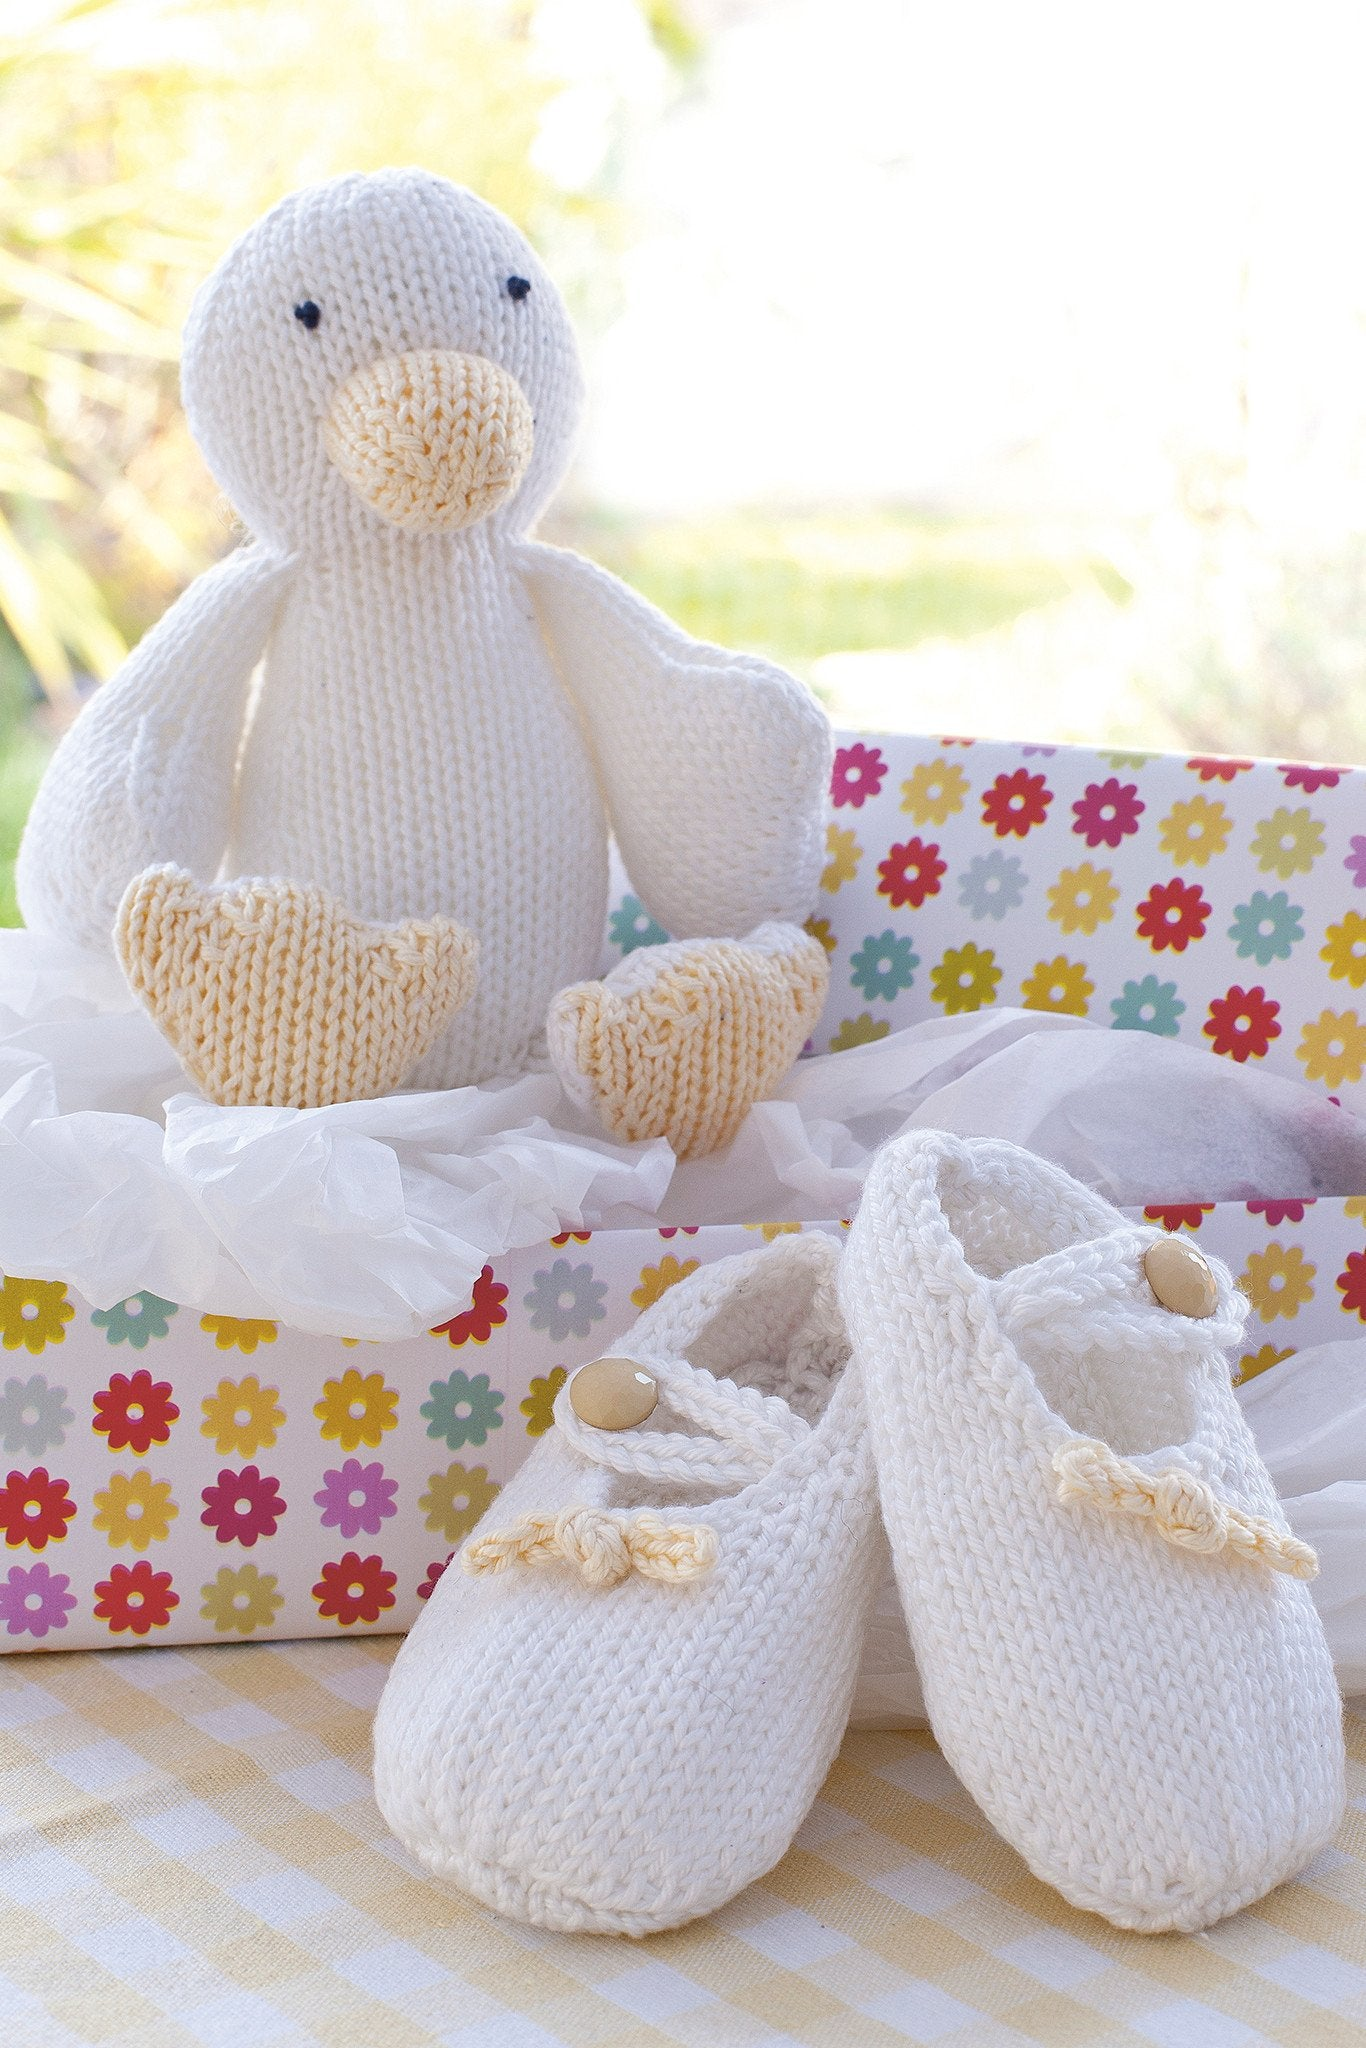 Baby Booties And Duck Knitting Patterns – The Knitting Network